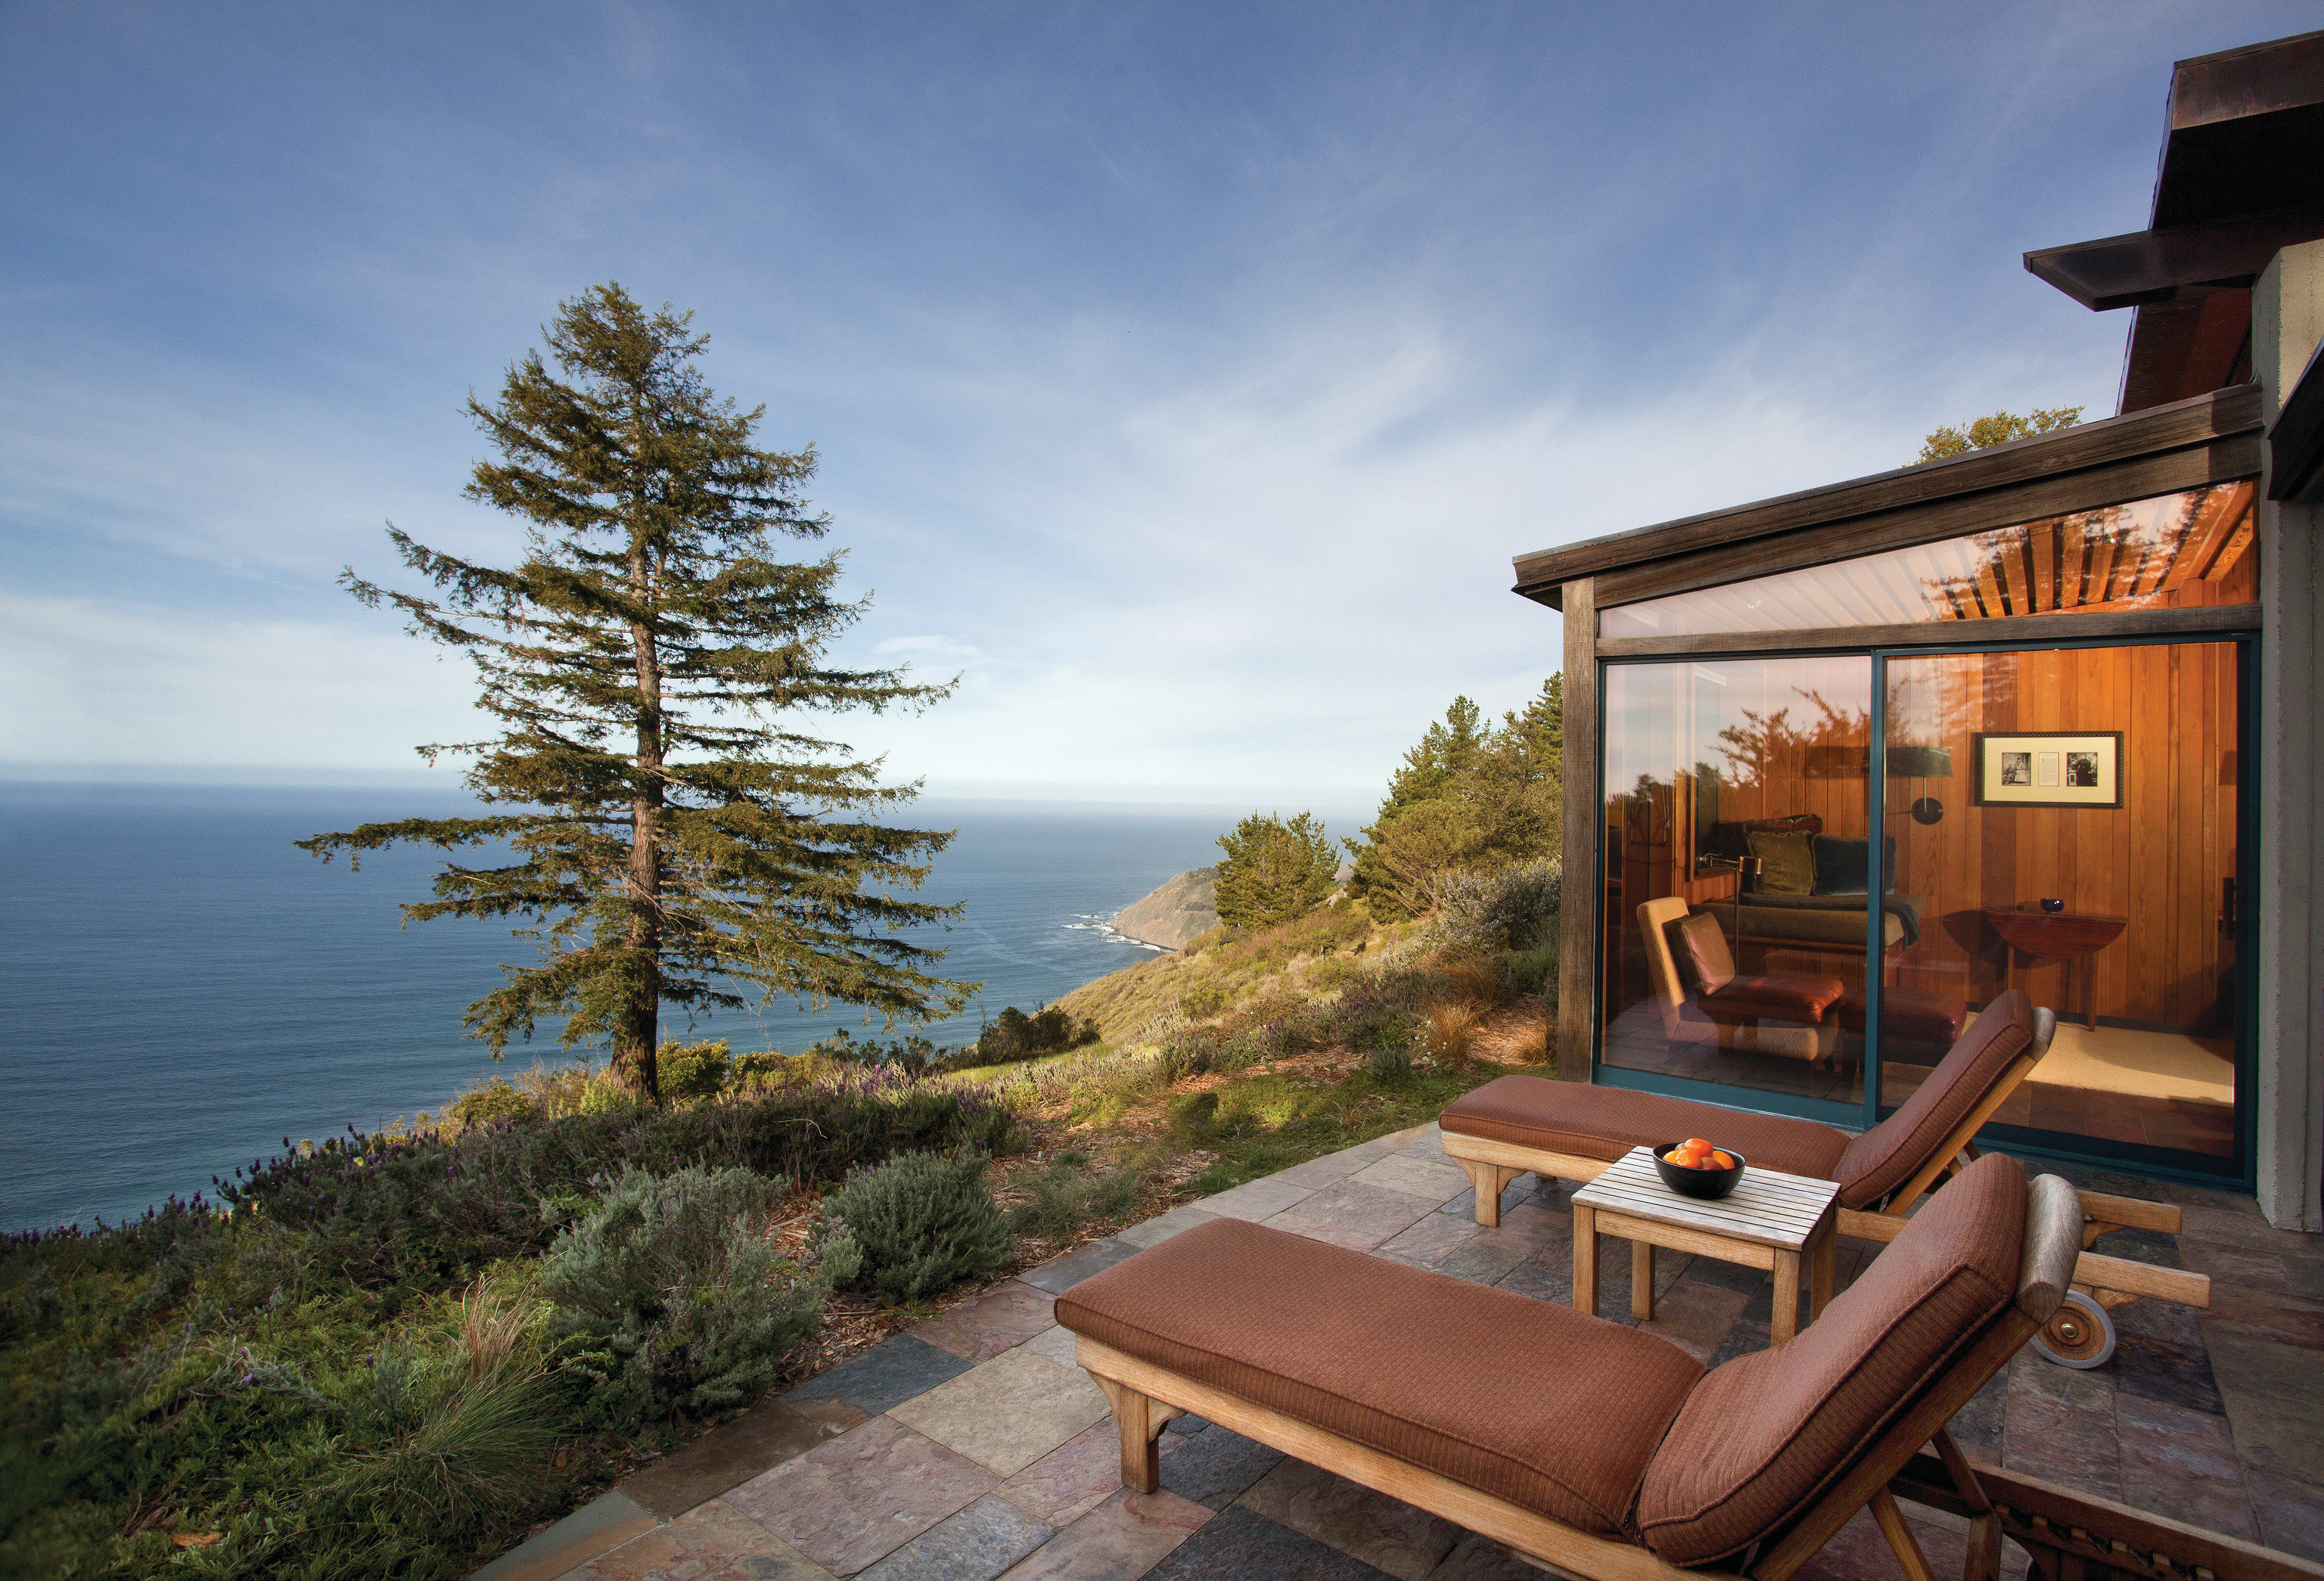 Hotels Romance sky outdoor tree house vacation home estate log cabin cottage real estate Villa overlooking stone